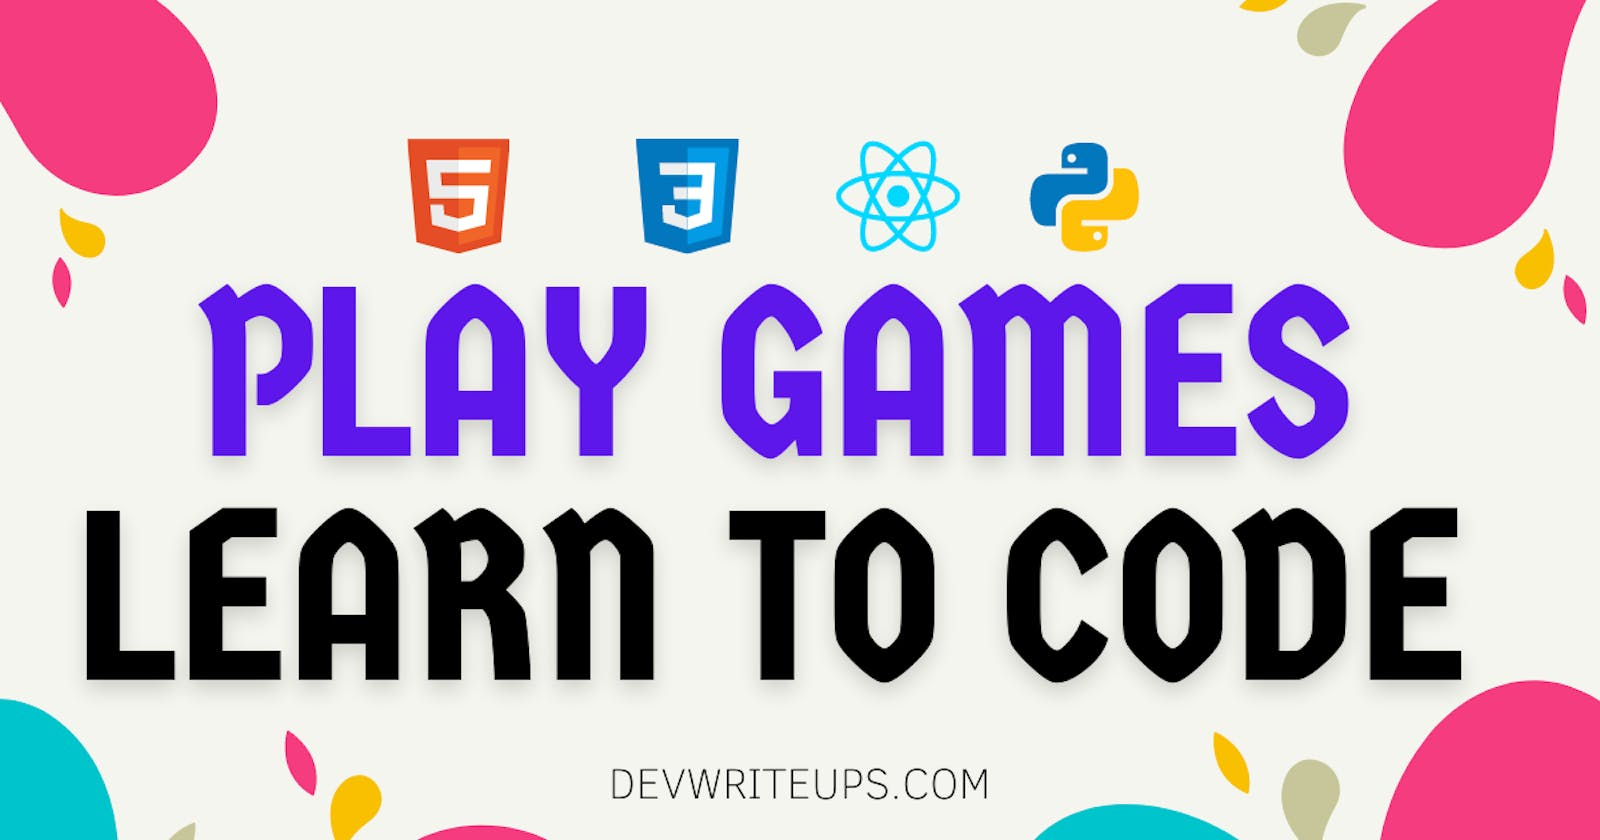 12 websites to learn to code by Playing Games